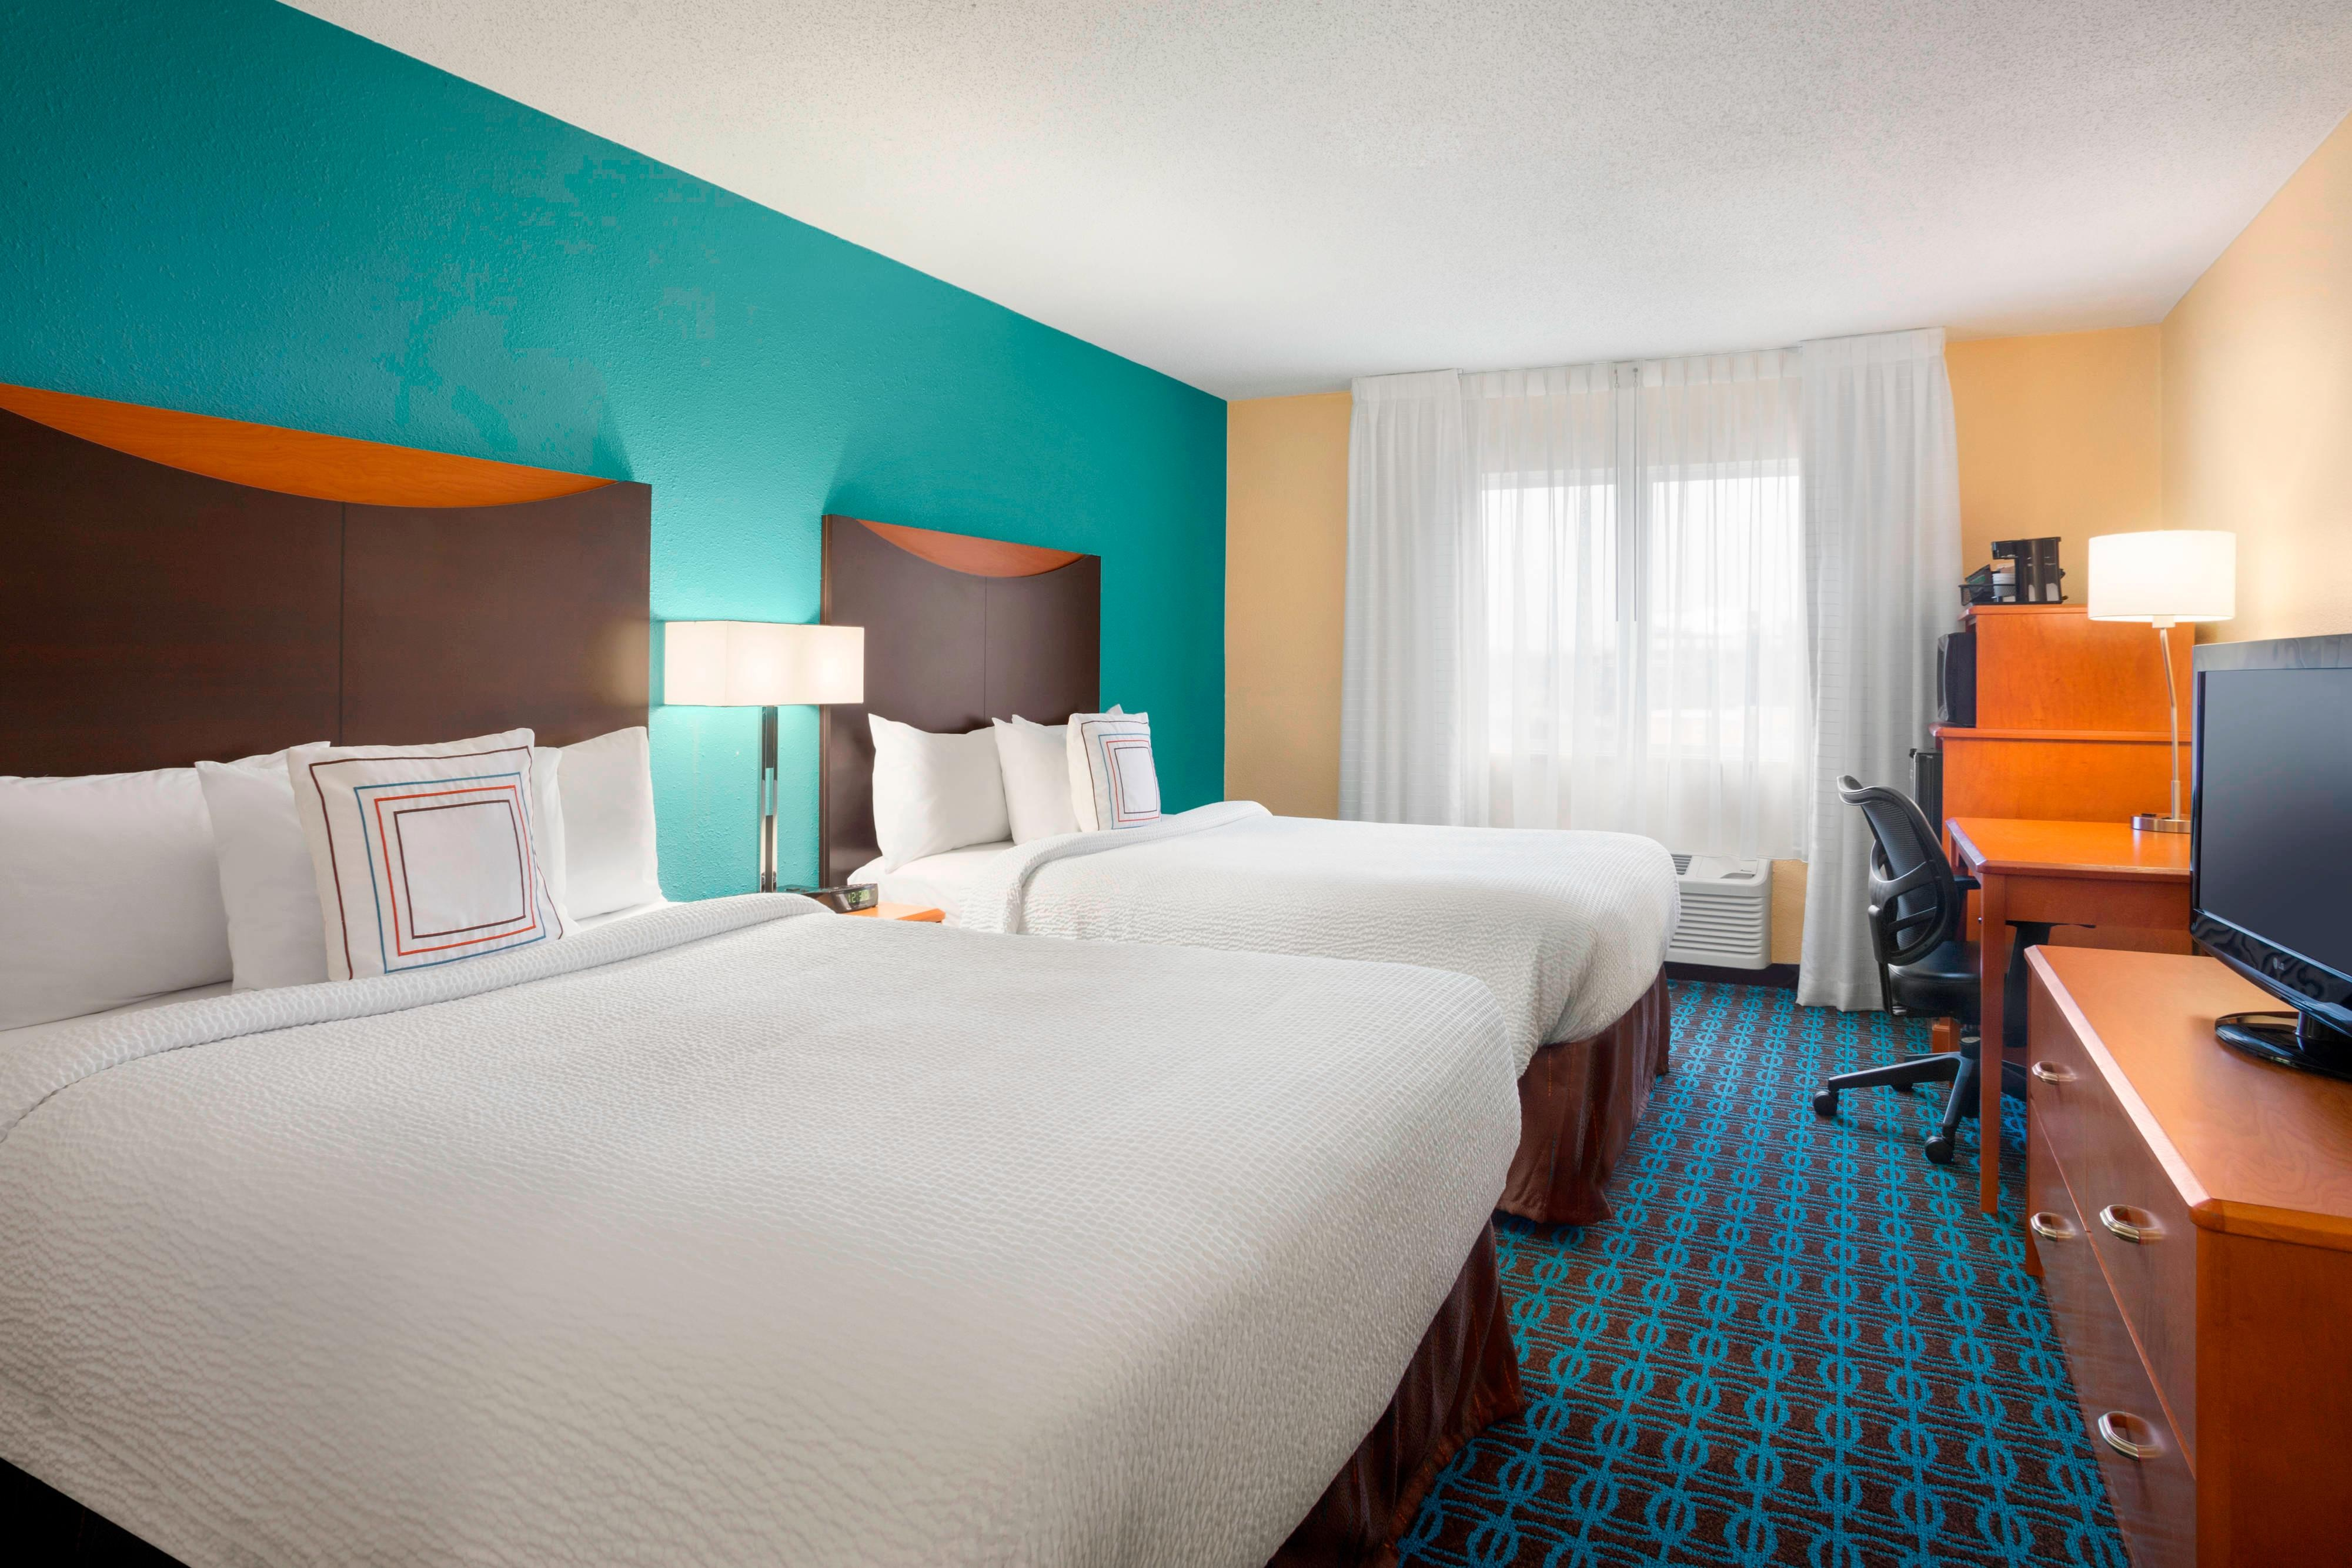 Dubuque Hotel Rooms To Fit Any Traveleru0027s Needs